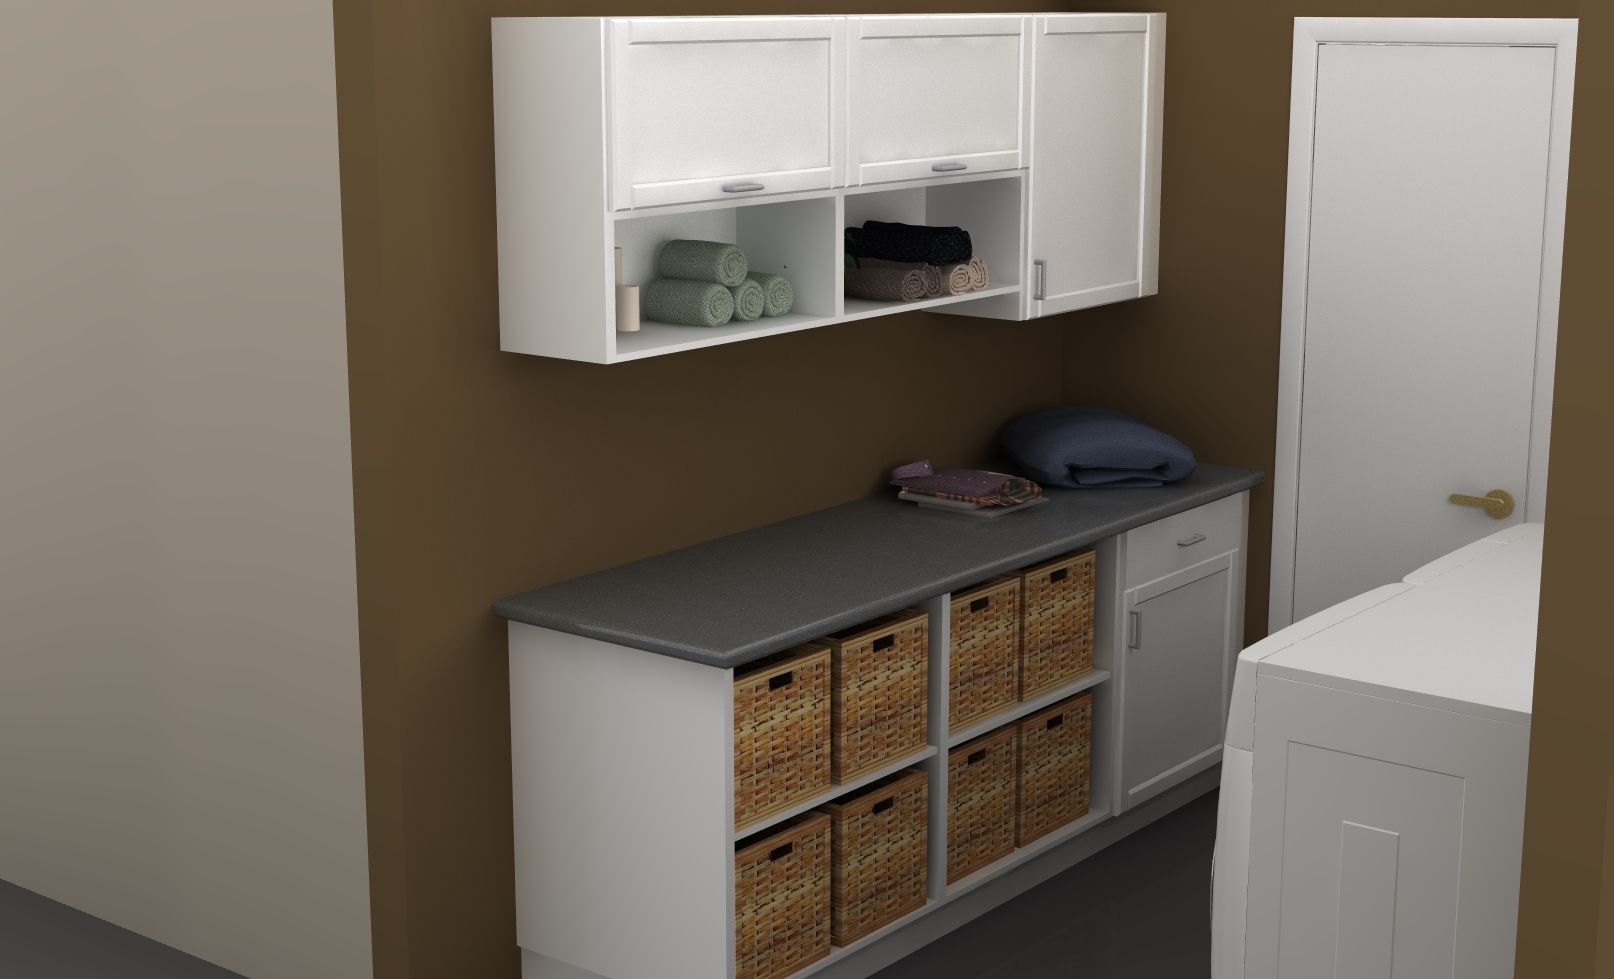 l bathroom laundry storage tall cabinets modular corner diy cabinet